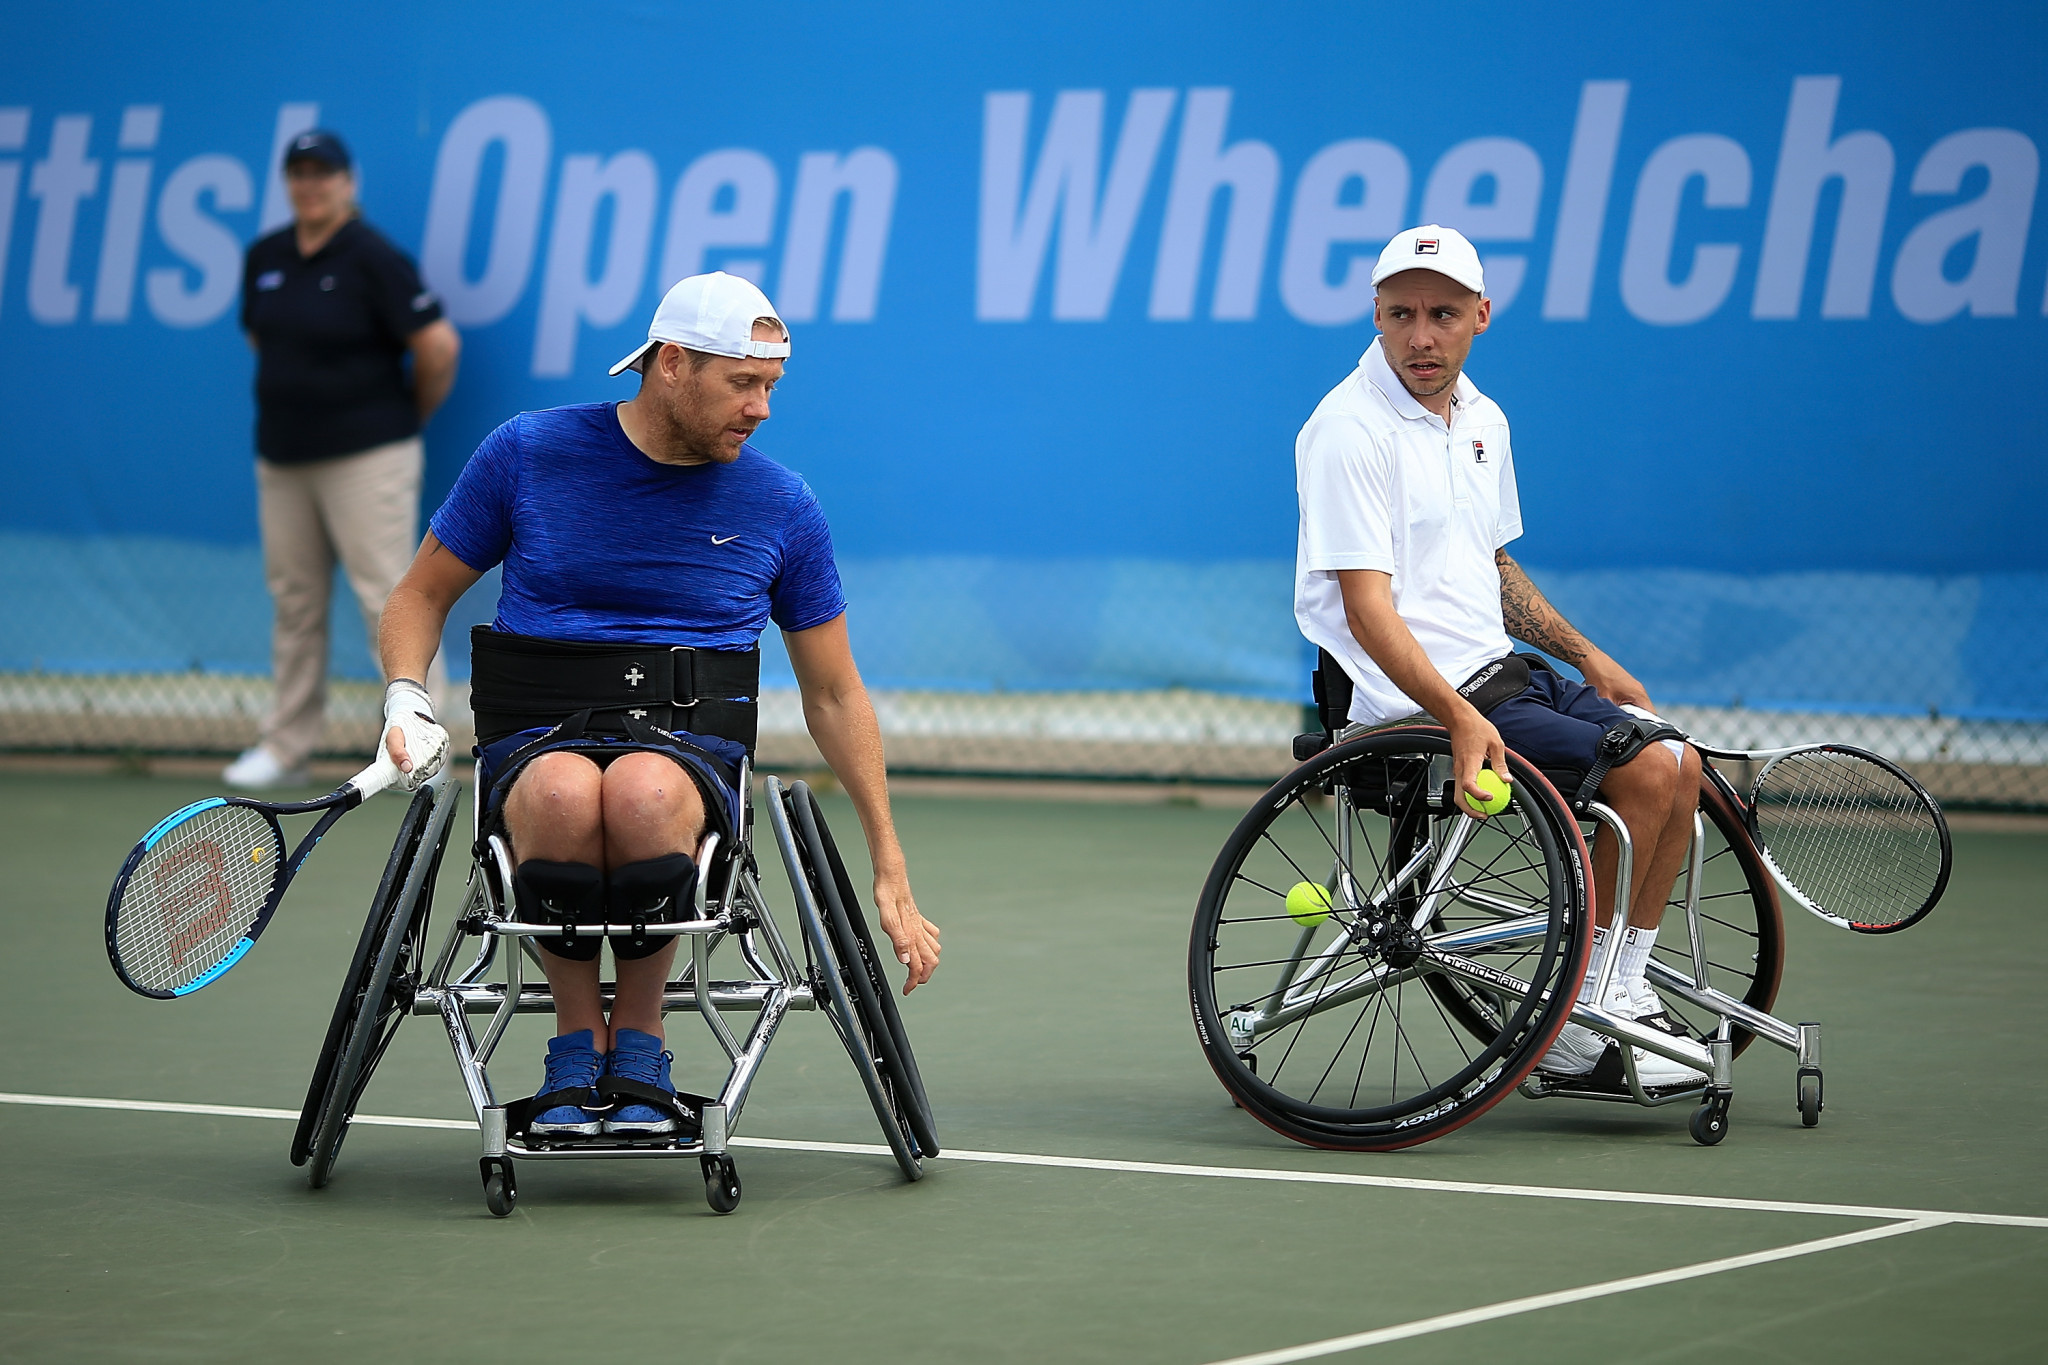 British pair Antony Cotterill and Andy Lapthorne are looking to qualify for the finals of the Wheelchair Doubles Masters in Bemmel to avenge their silver medals from last year ©Getty Images